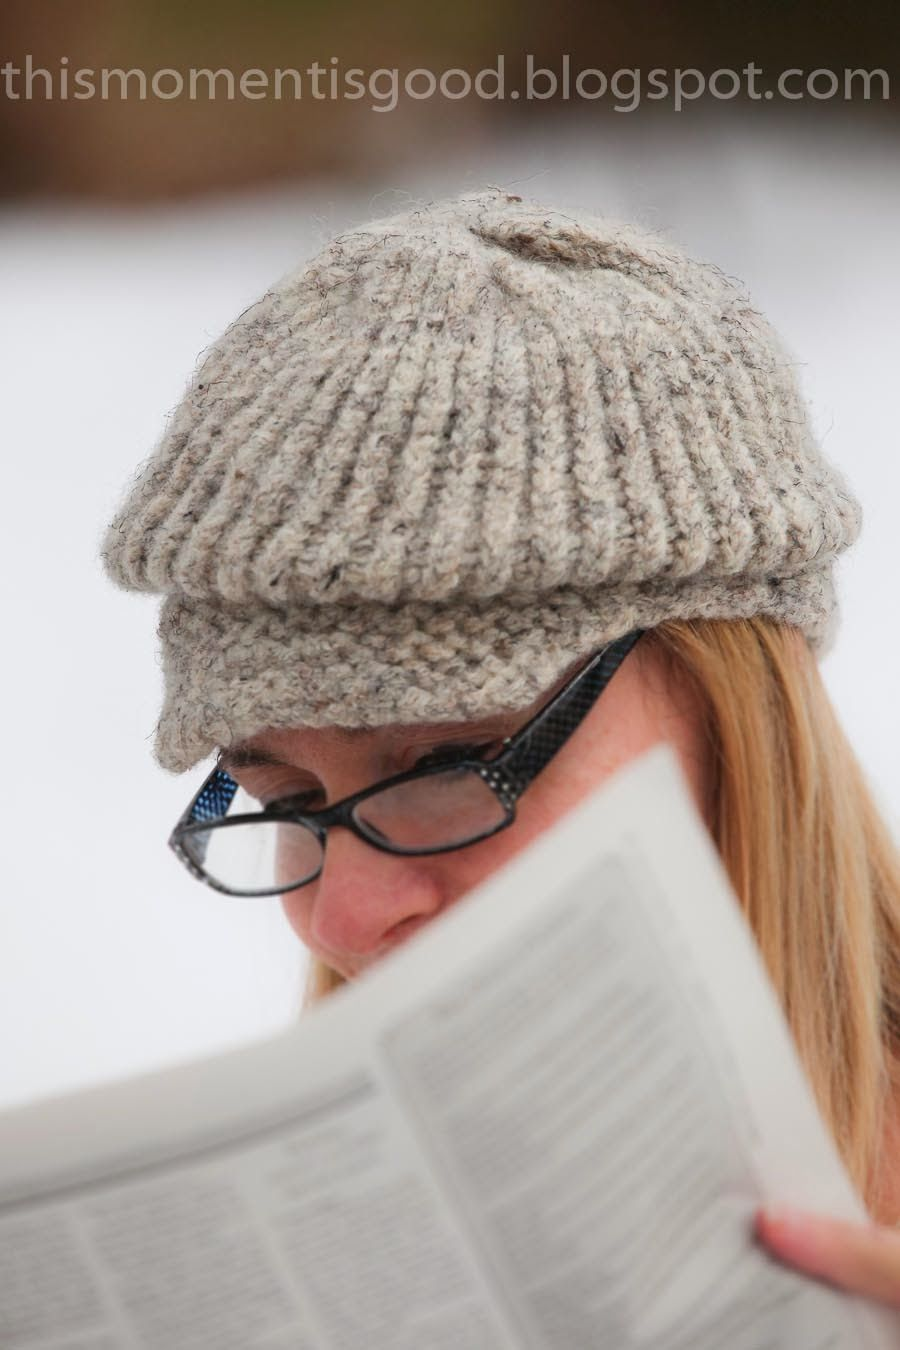 LOOM KNIT FELTED NEWSBOY HAT | Free pattern, Loom knitting and Patterns